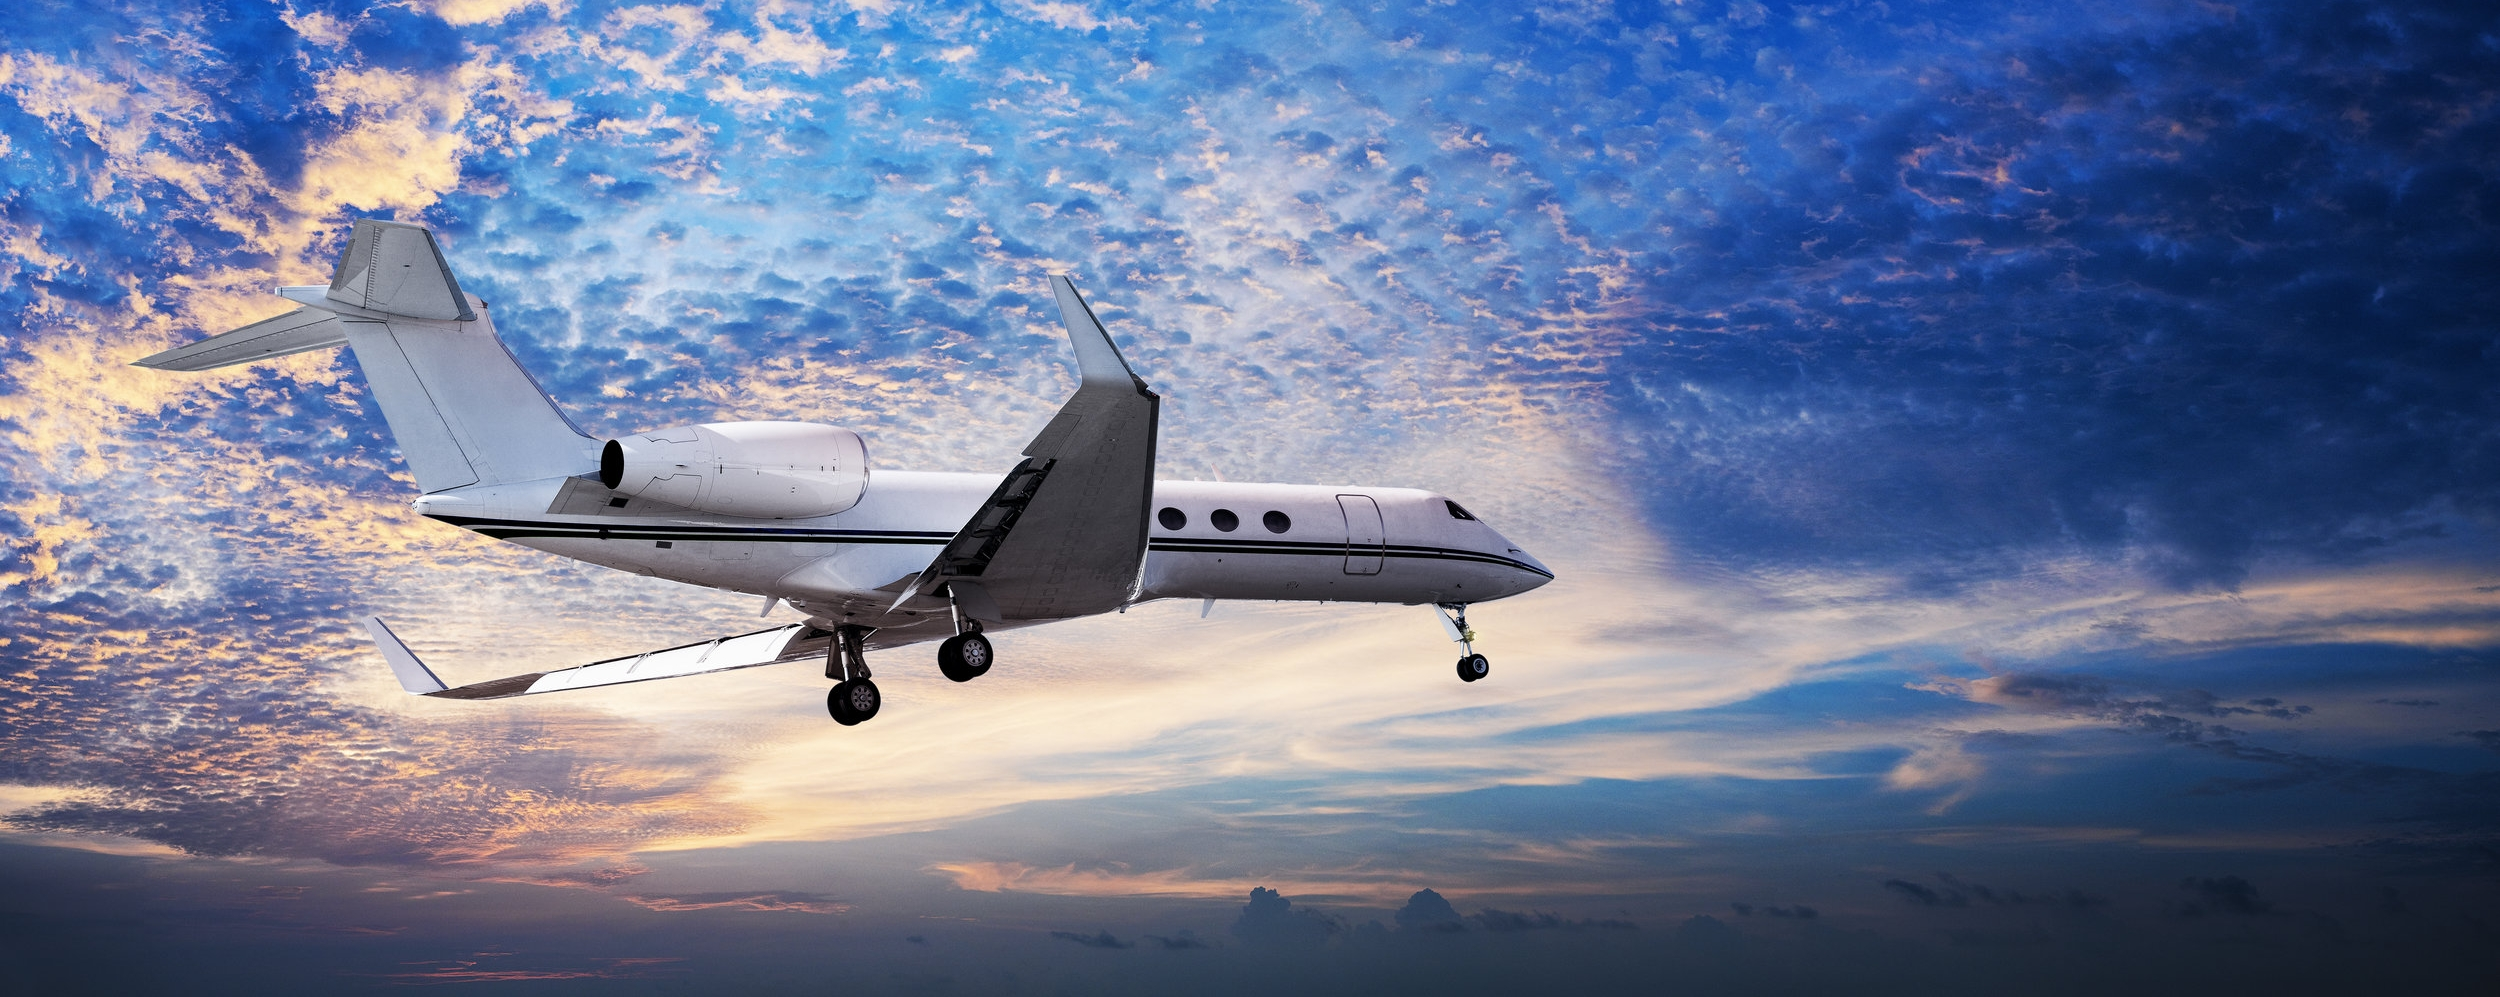 All The Services Your Aircraft Needs To Stay Airborne And Start Saving Money It S Easy See Synergies When You Look At From Bank Angle